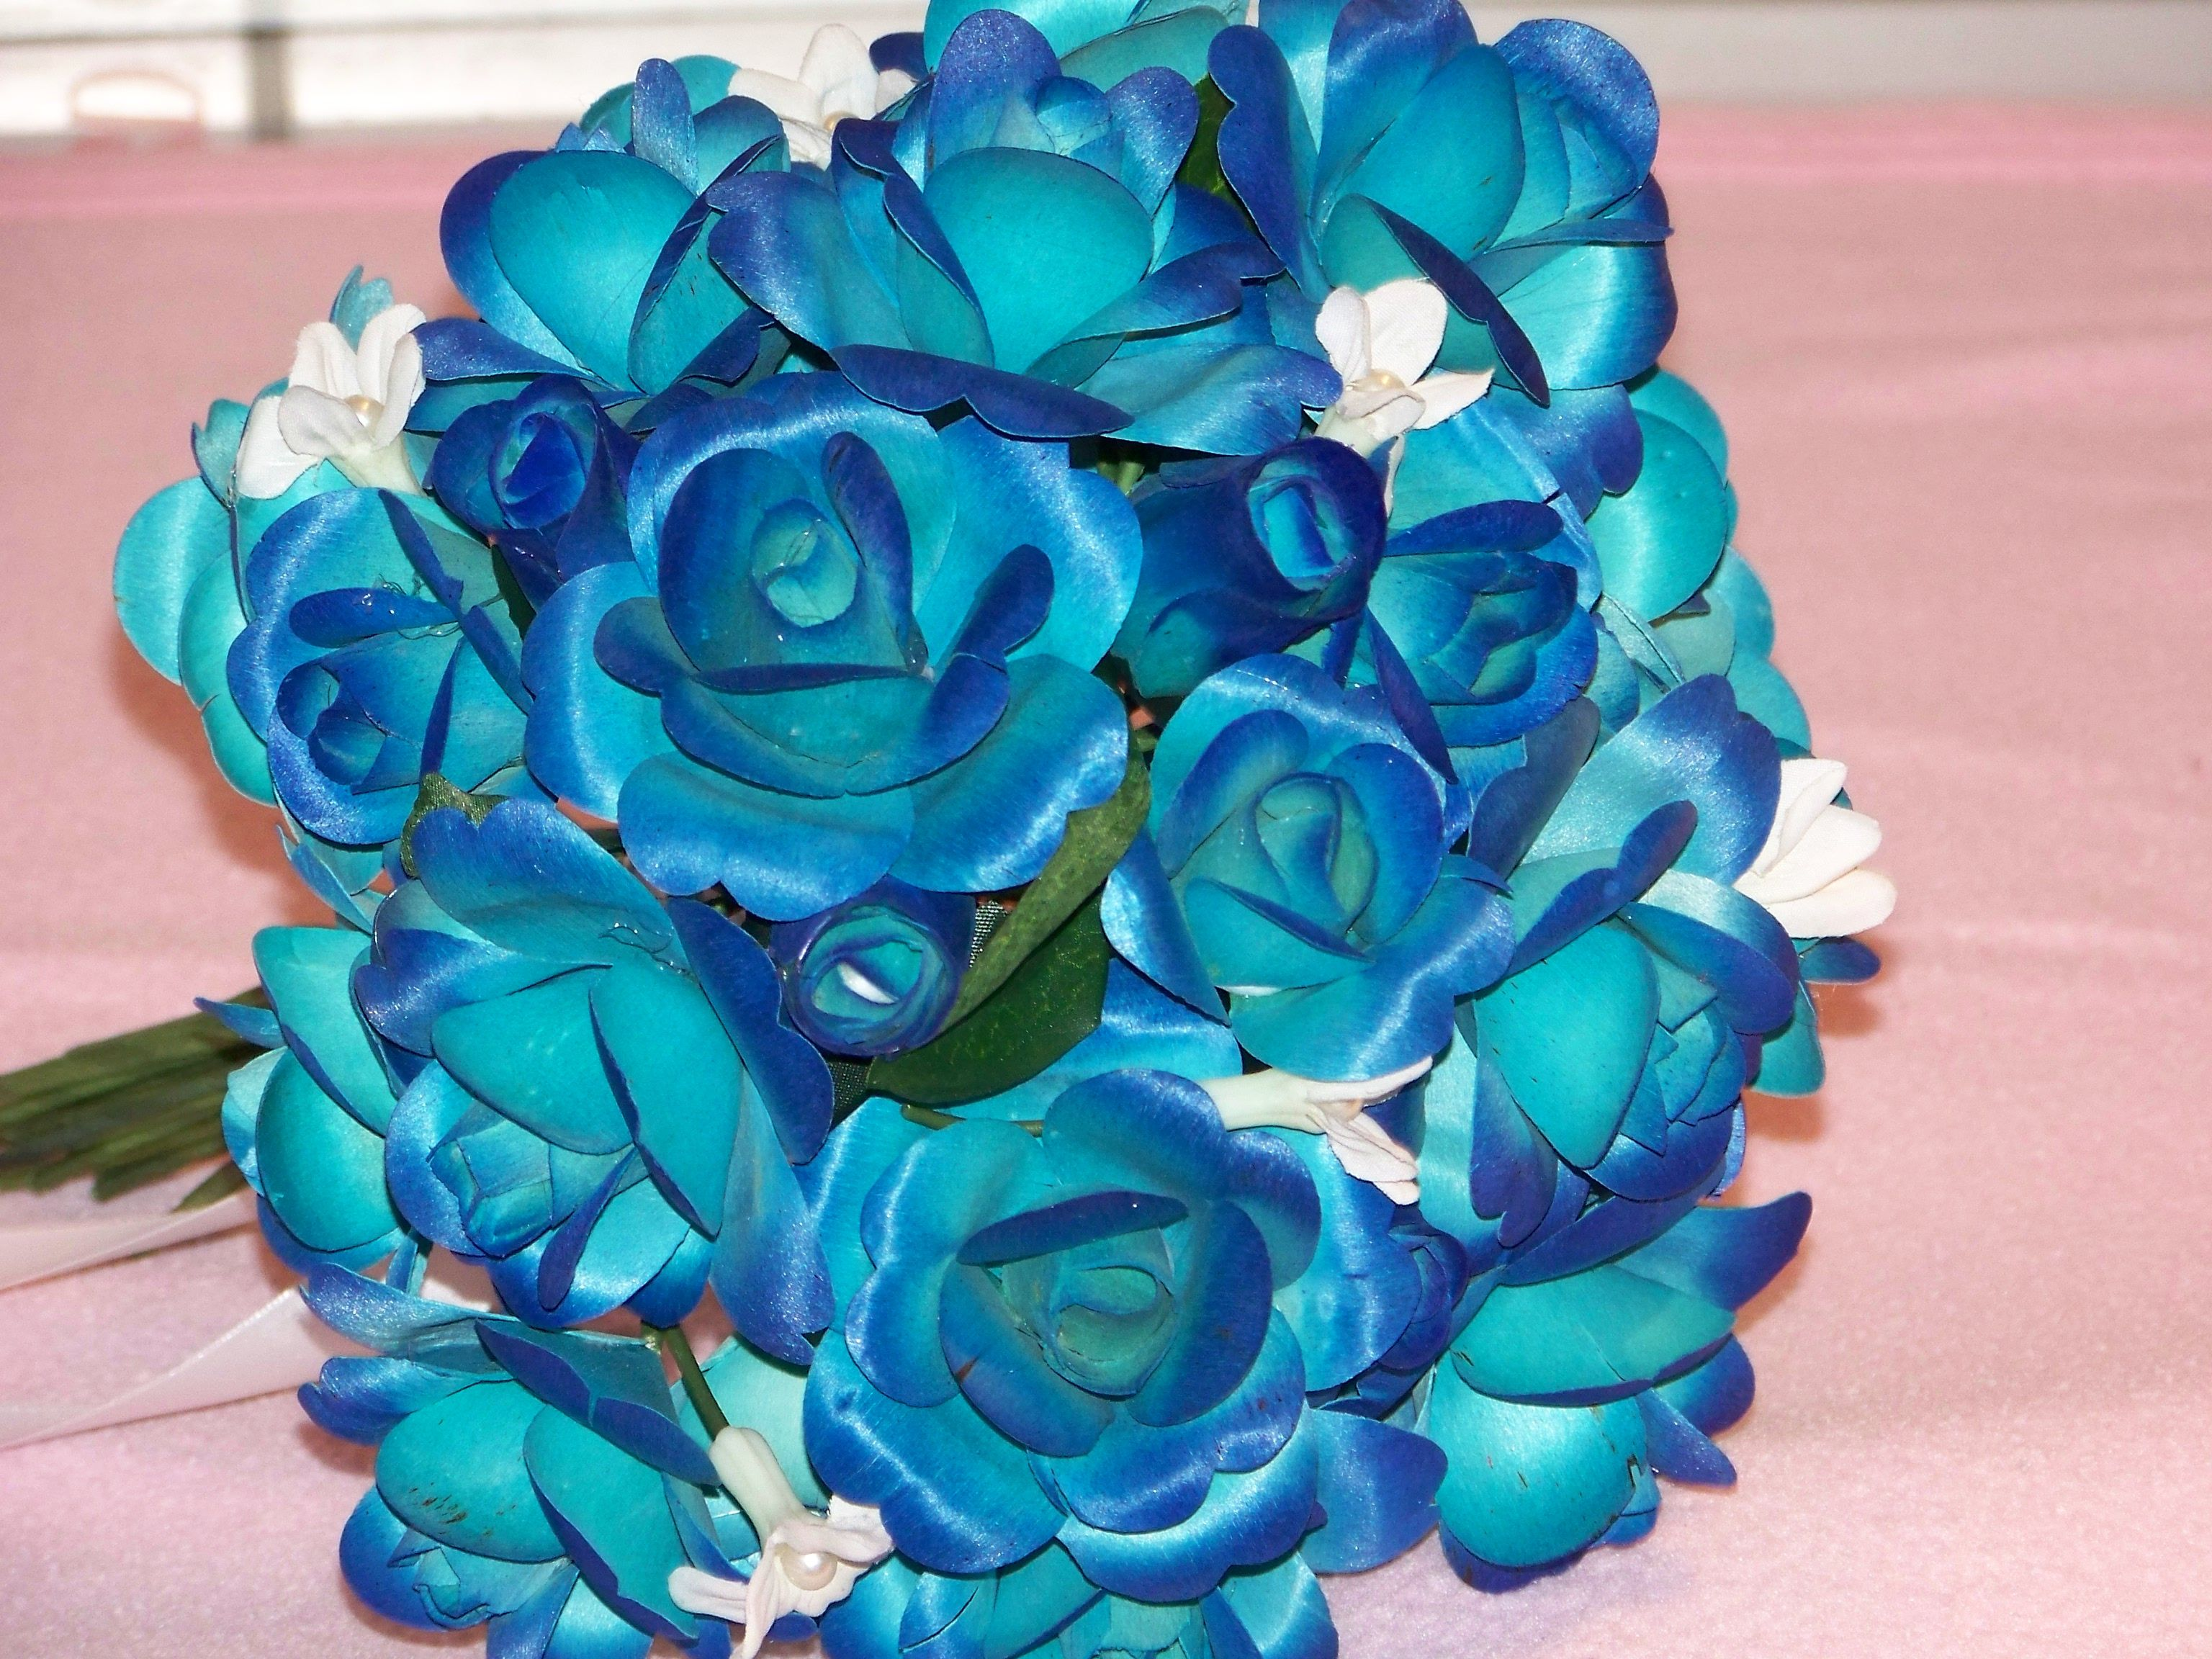 Very different color of blue roses bing images a rose for Different color roses bouquet